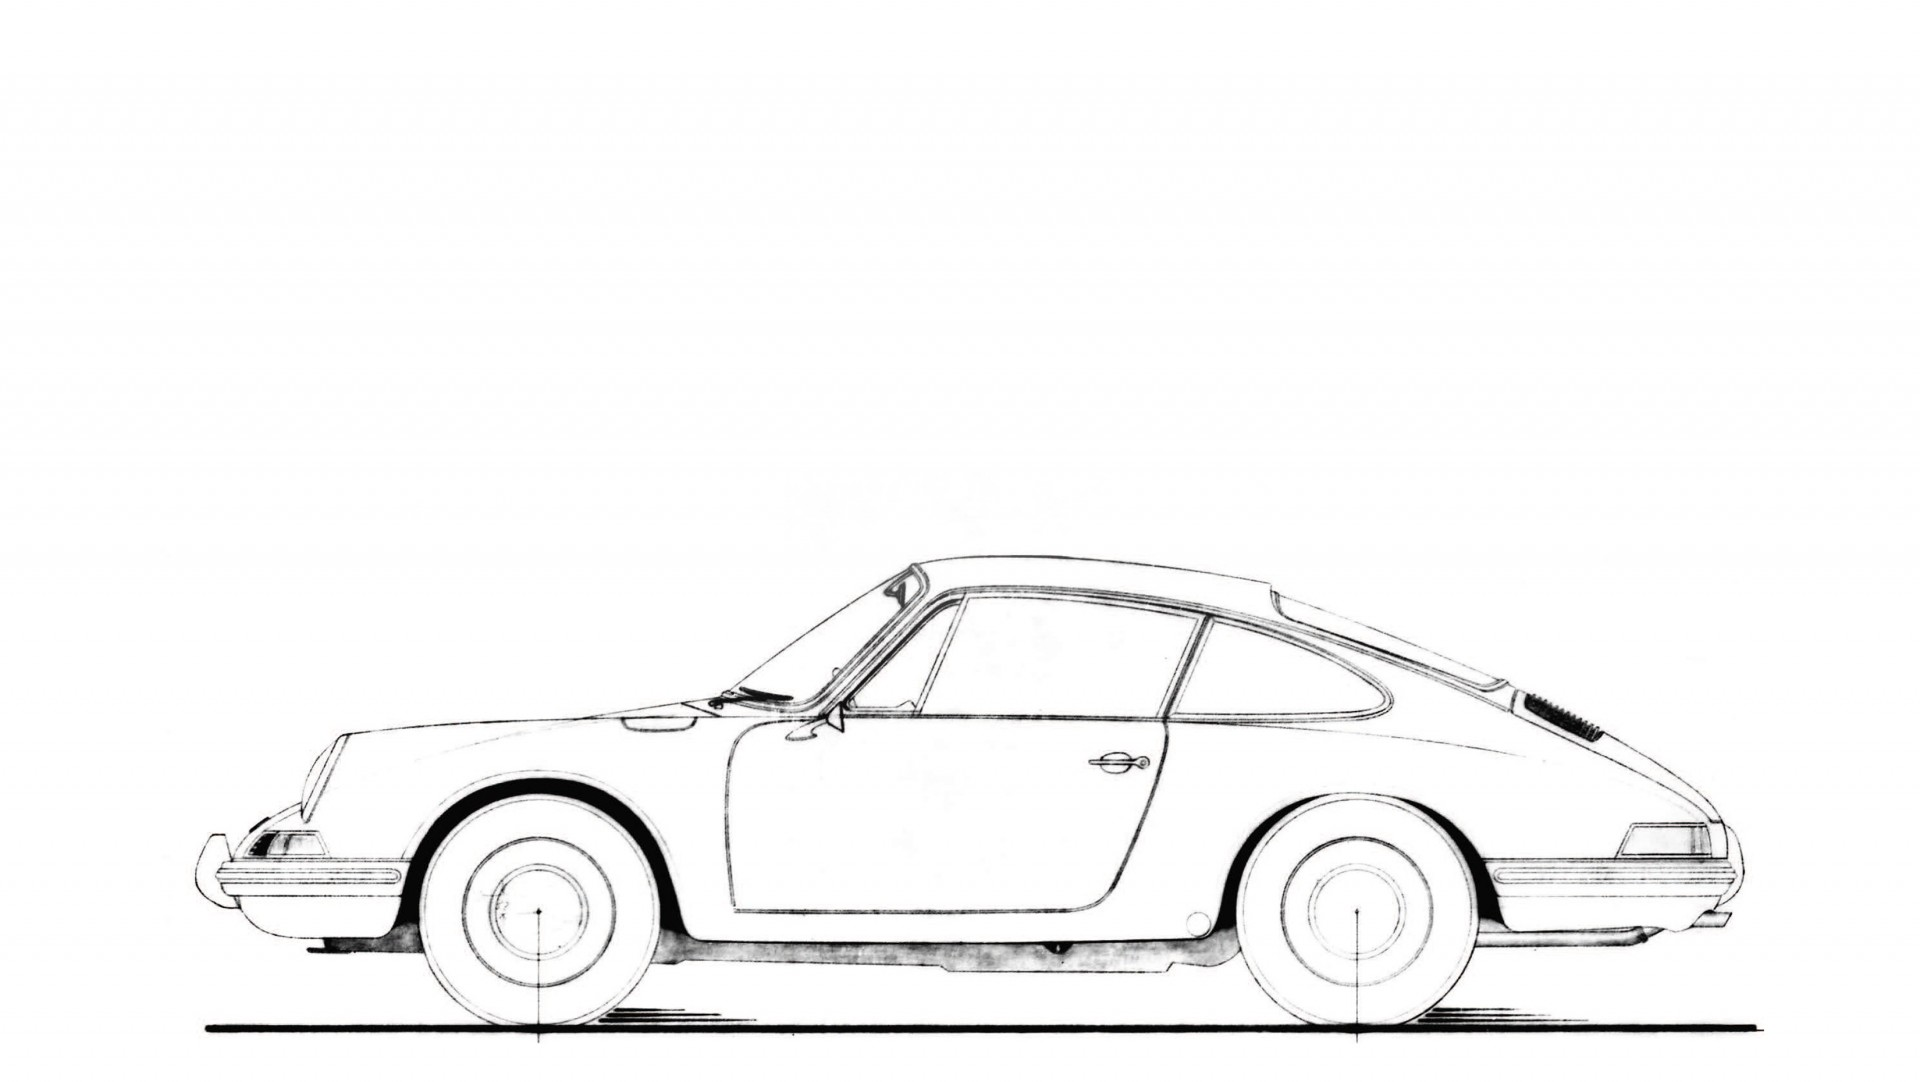 high_sketch_porsche_911_1963_porsche_ag.jpg